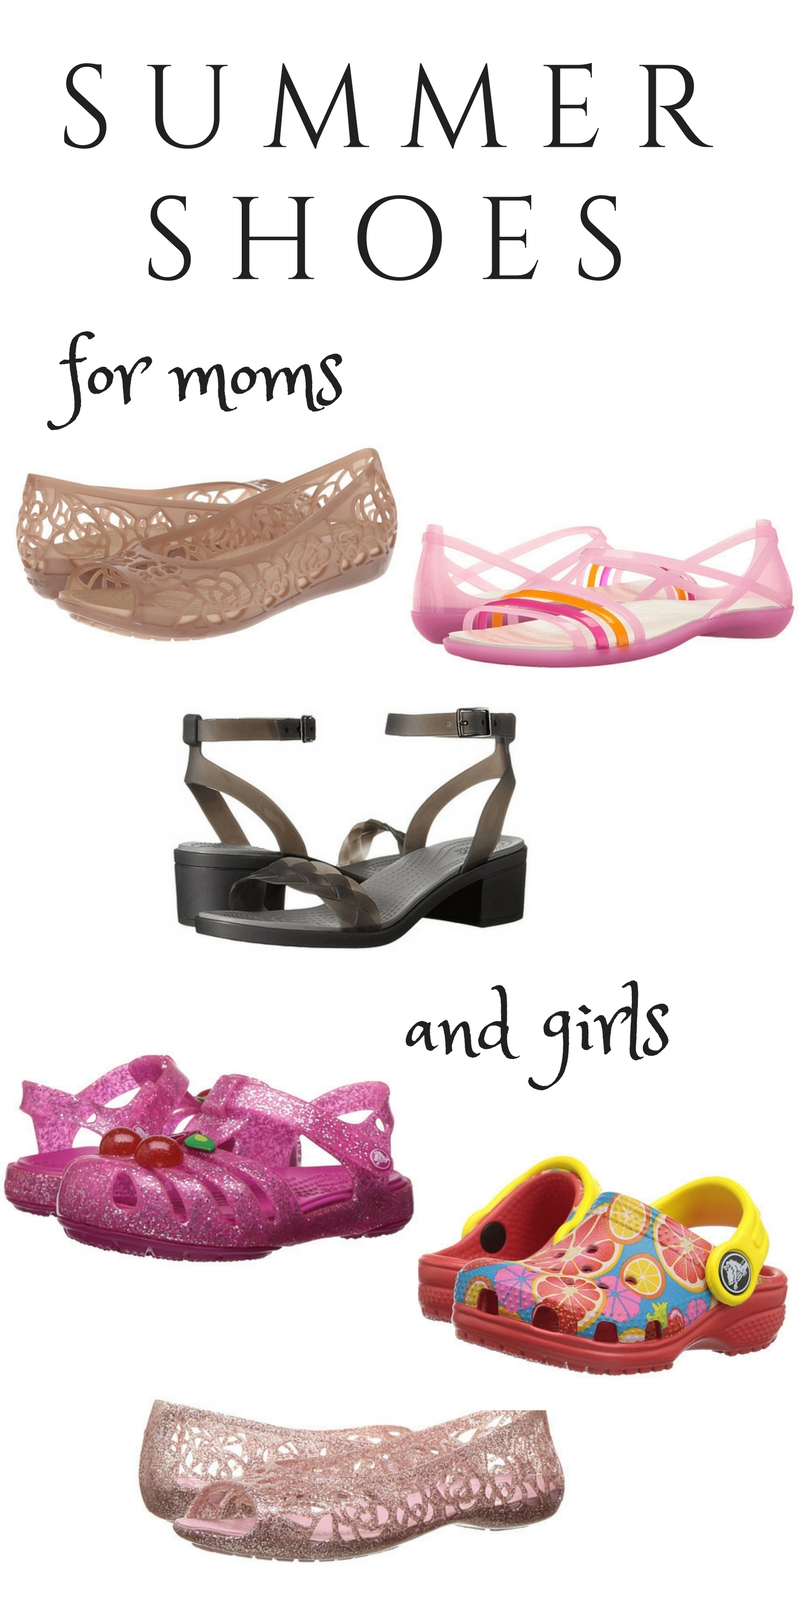 Summer Shoes for Moms and Girls by fashion blogger Casual Claire